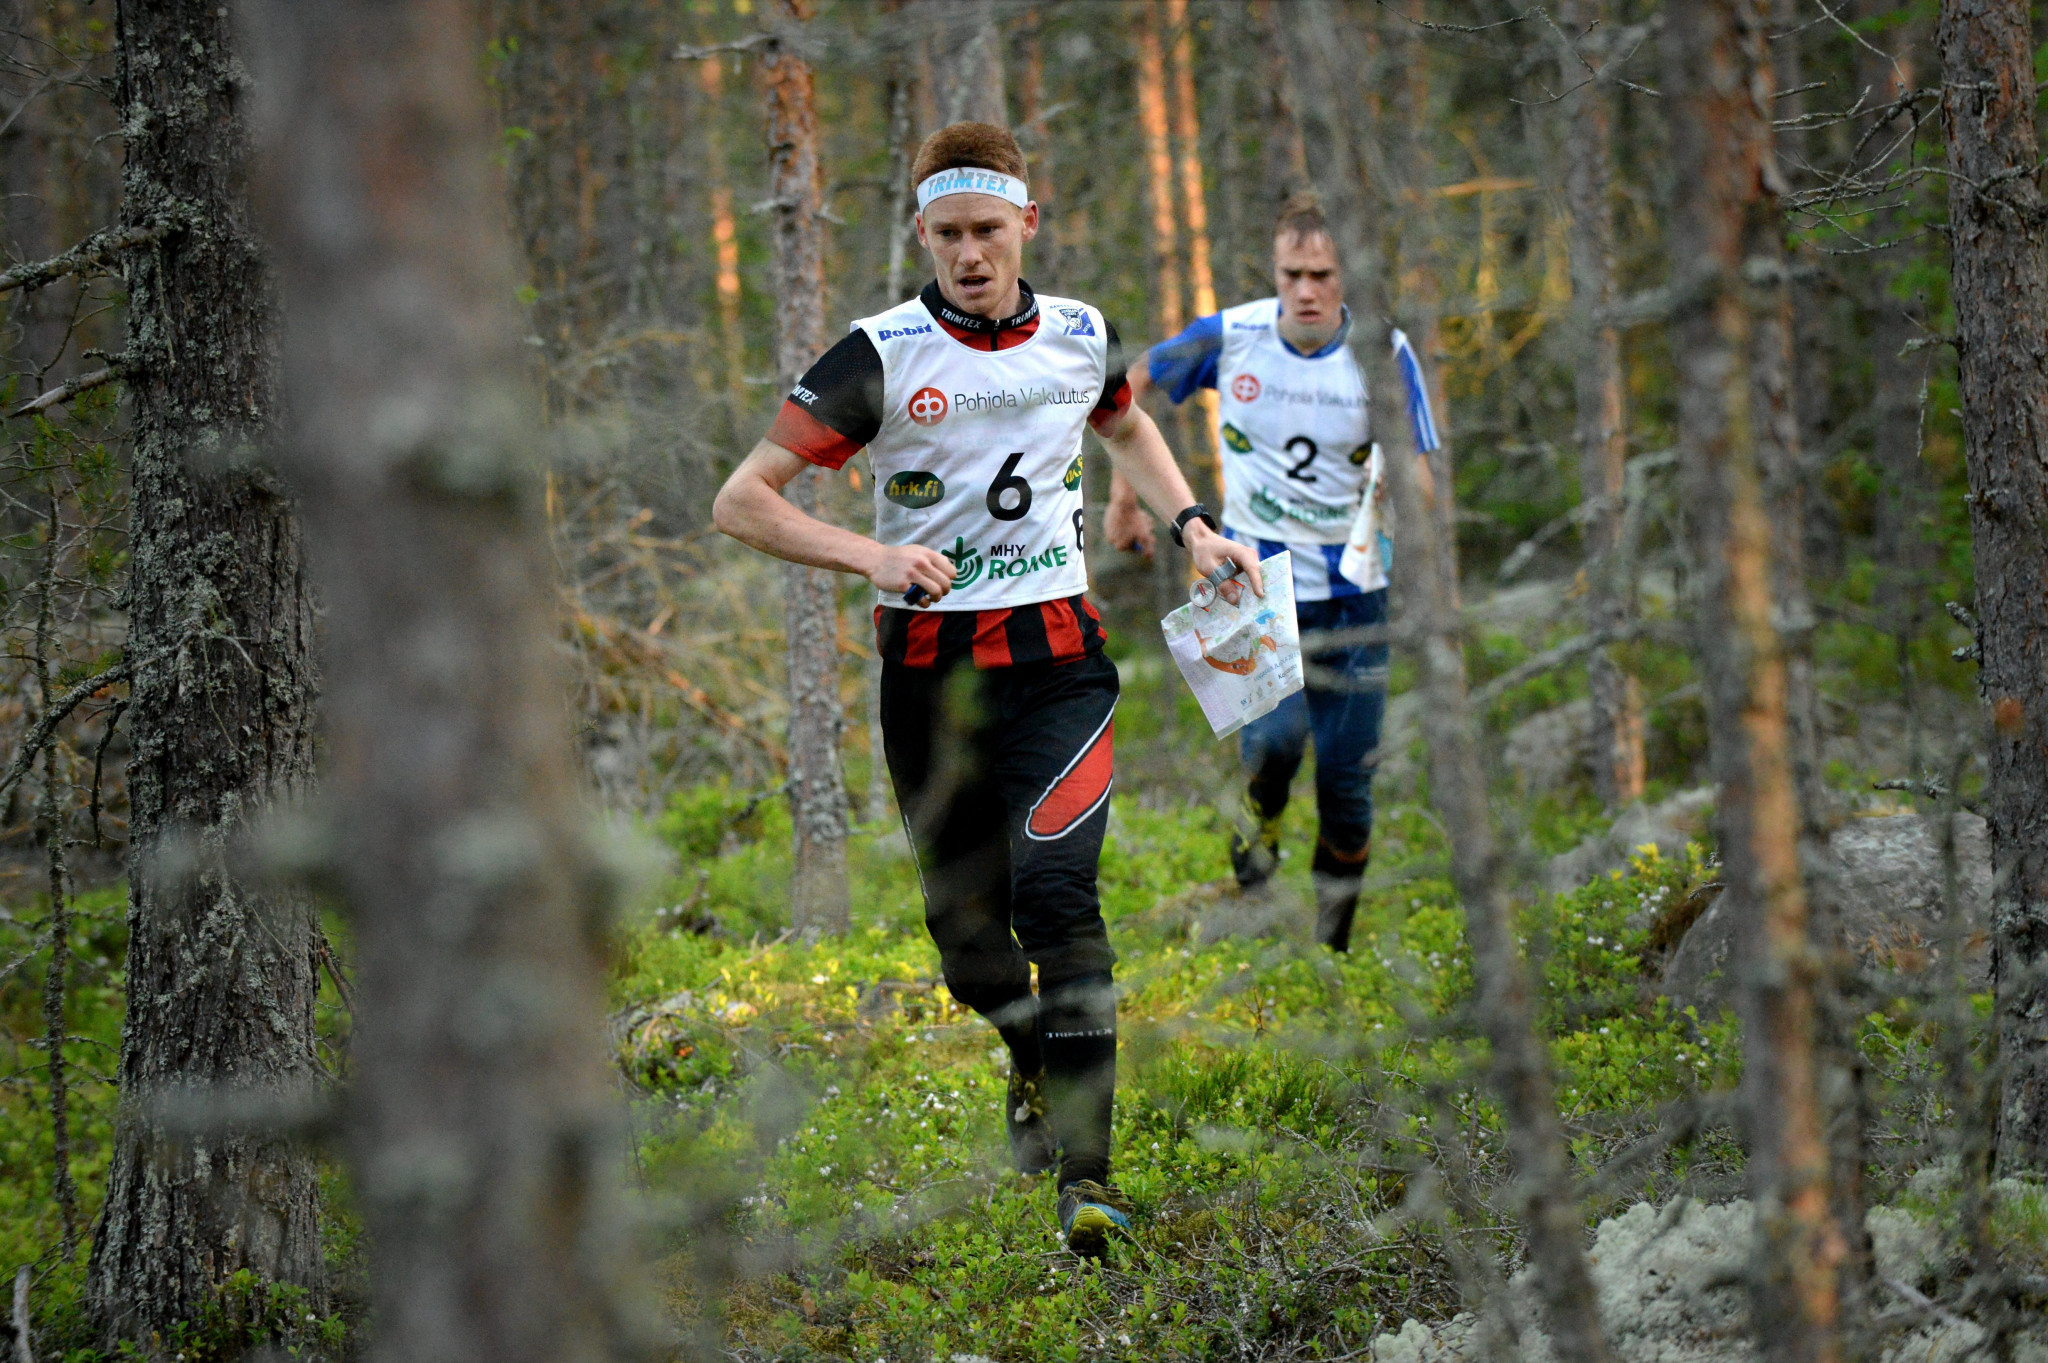 It's a new era for orienteering at the World Championships ©Getty Images